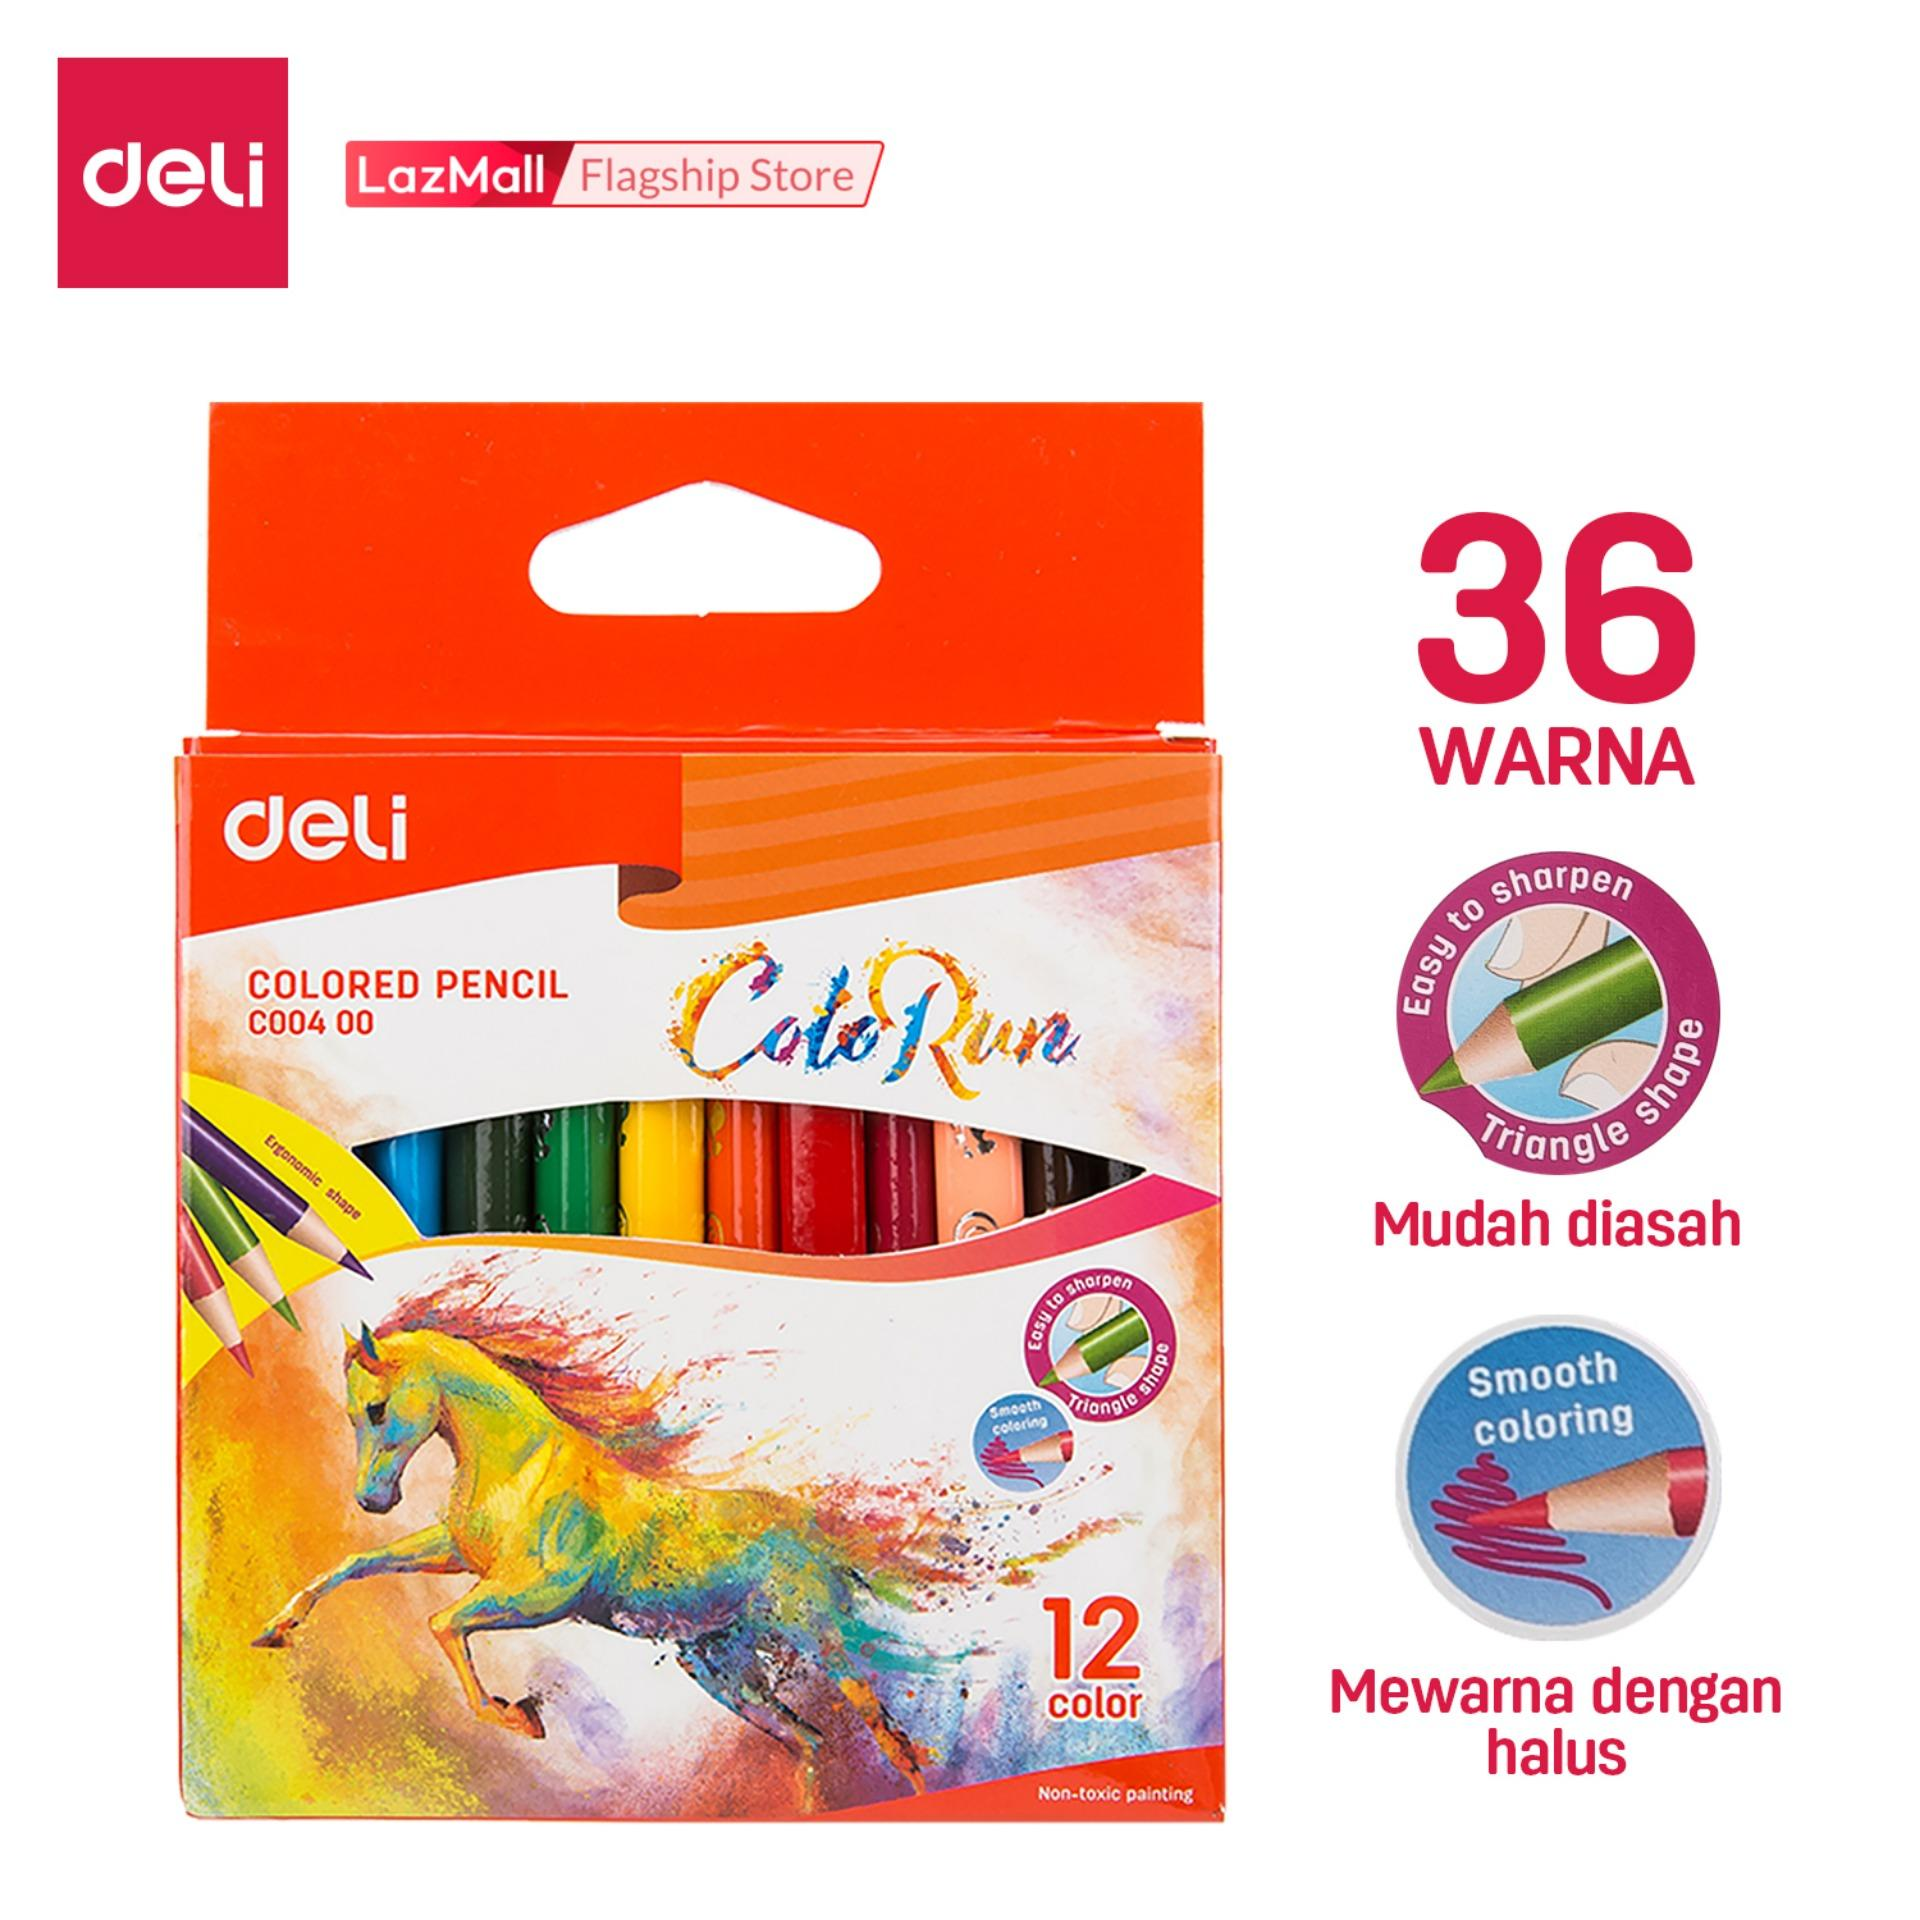 Deli Pensil Warna Sekolah / School Color Pencil - 12C 12warna/box / 12color/box - Terbuat dari poplar, mudah dipertajam, pegangan ergonomis segitiga / Made from poplar, easy to sharpen, Triangular ergonomic Hold (EC00400)